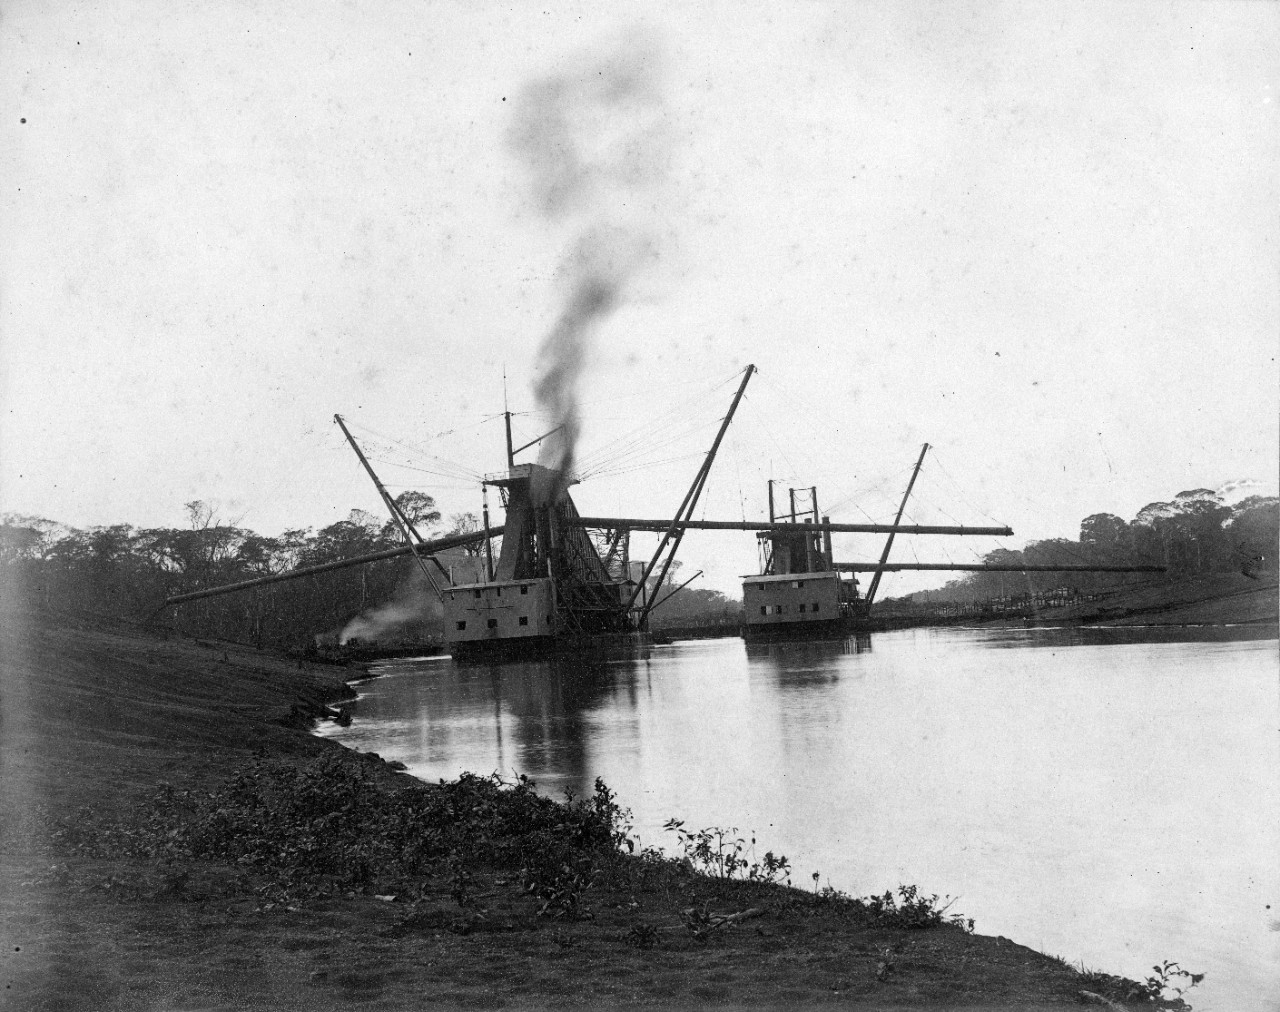 22 oversize photos, mounted on cardboard, showing construction of the failed Nicaragua Canal, circa 1890. Views of clearing of land, and extensive views of dredges and dredging operations. Views of Managua, and buildings near the operation.